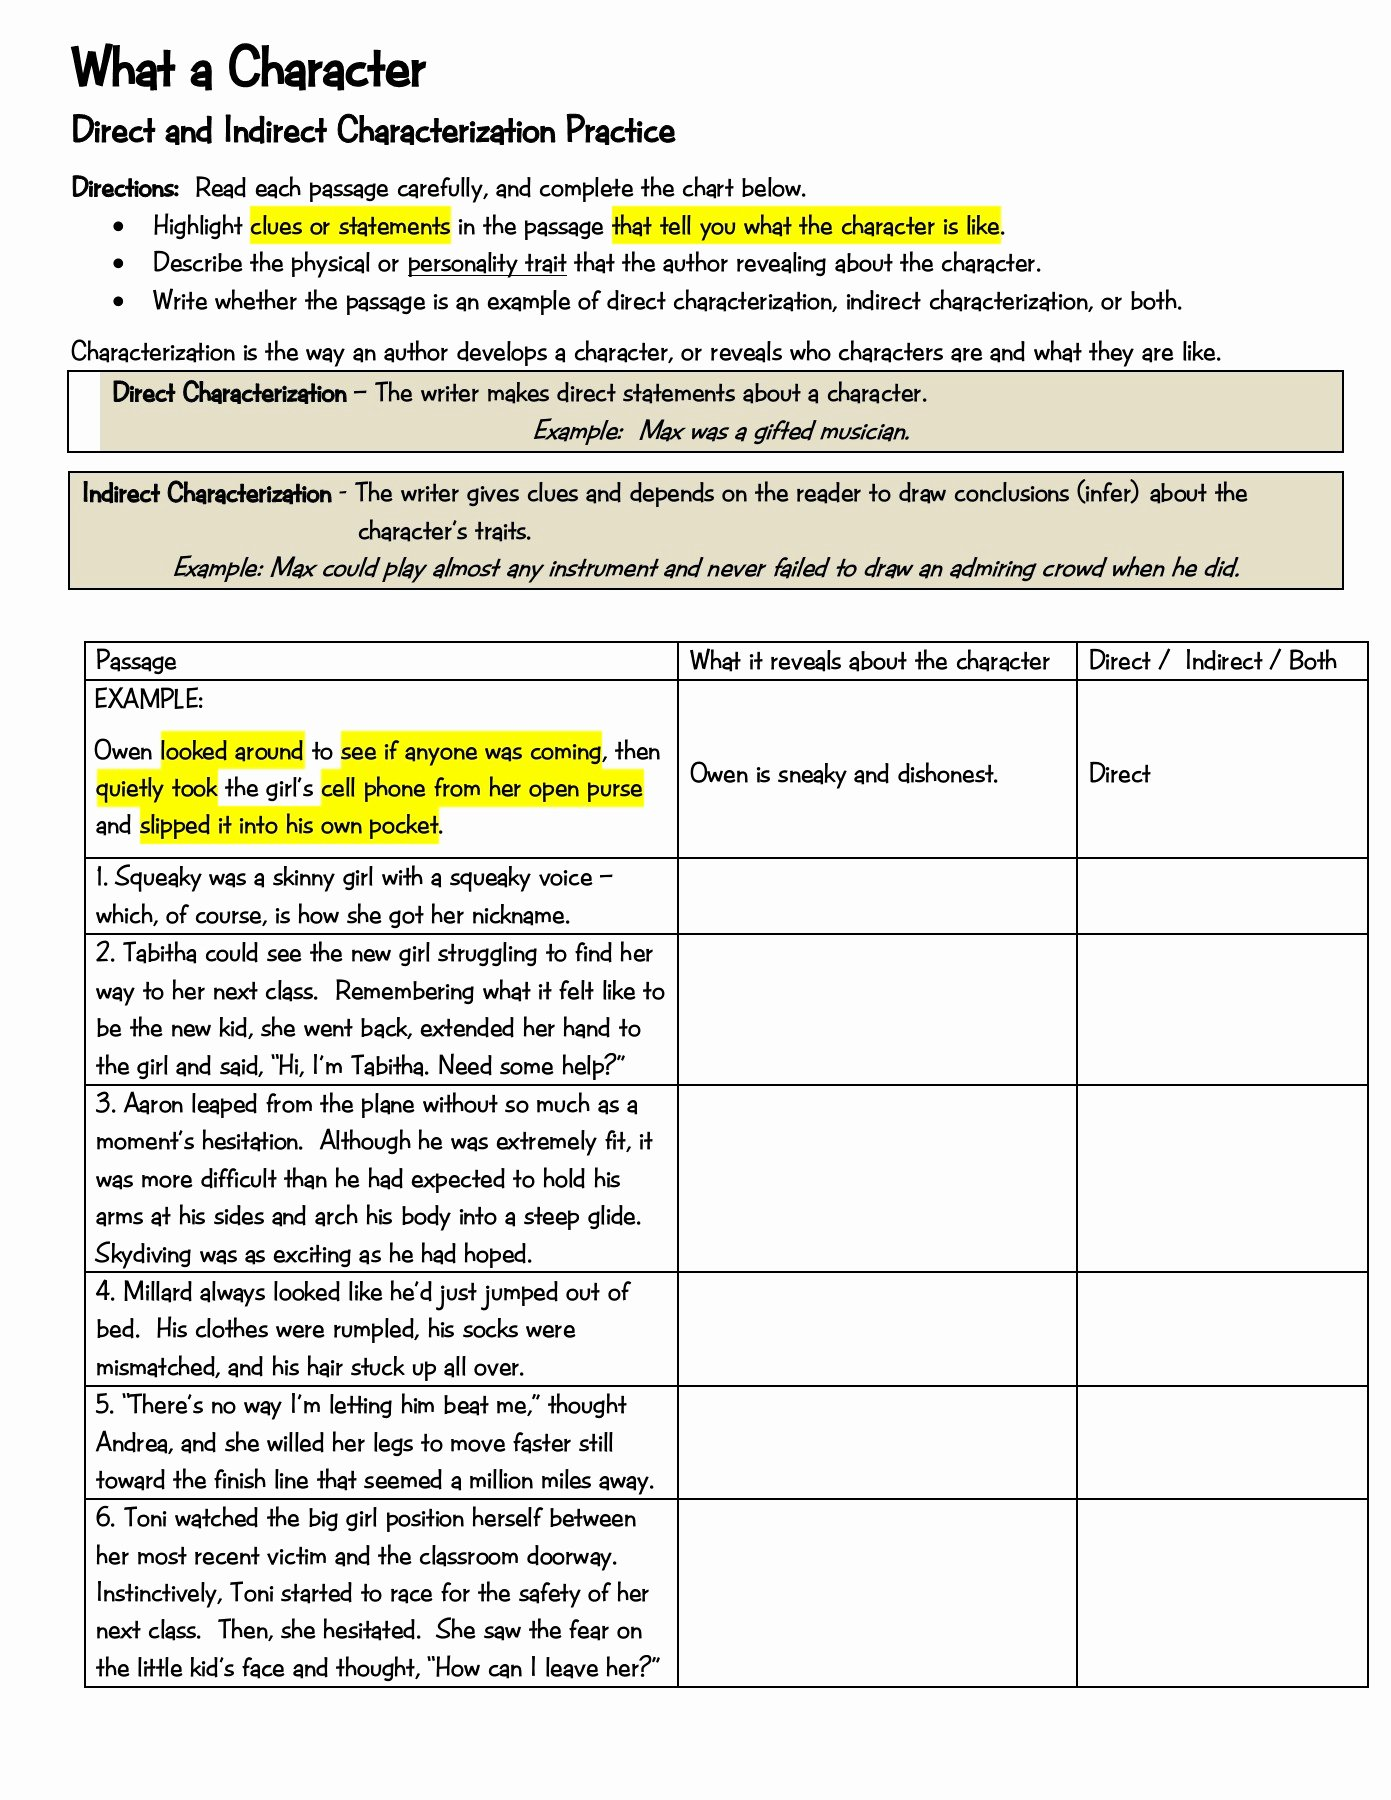 Direct and Indirect Characterization Worksheet New Characterization 1 Pages 1 2 Text Version